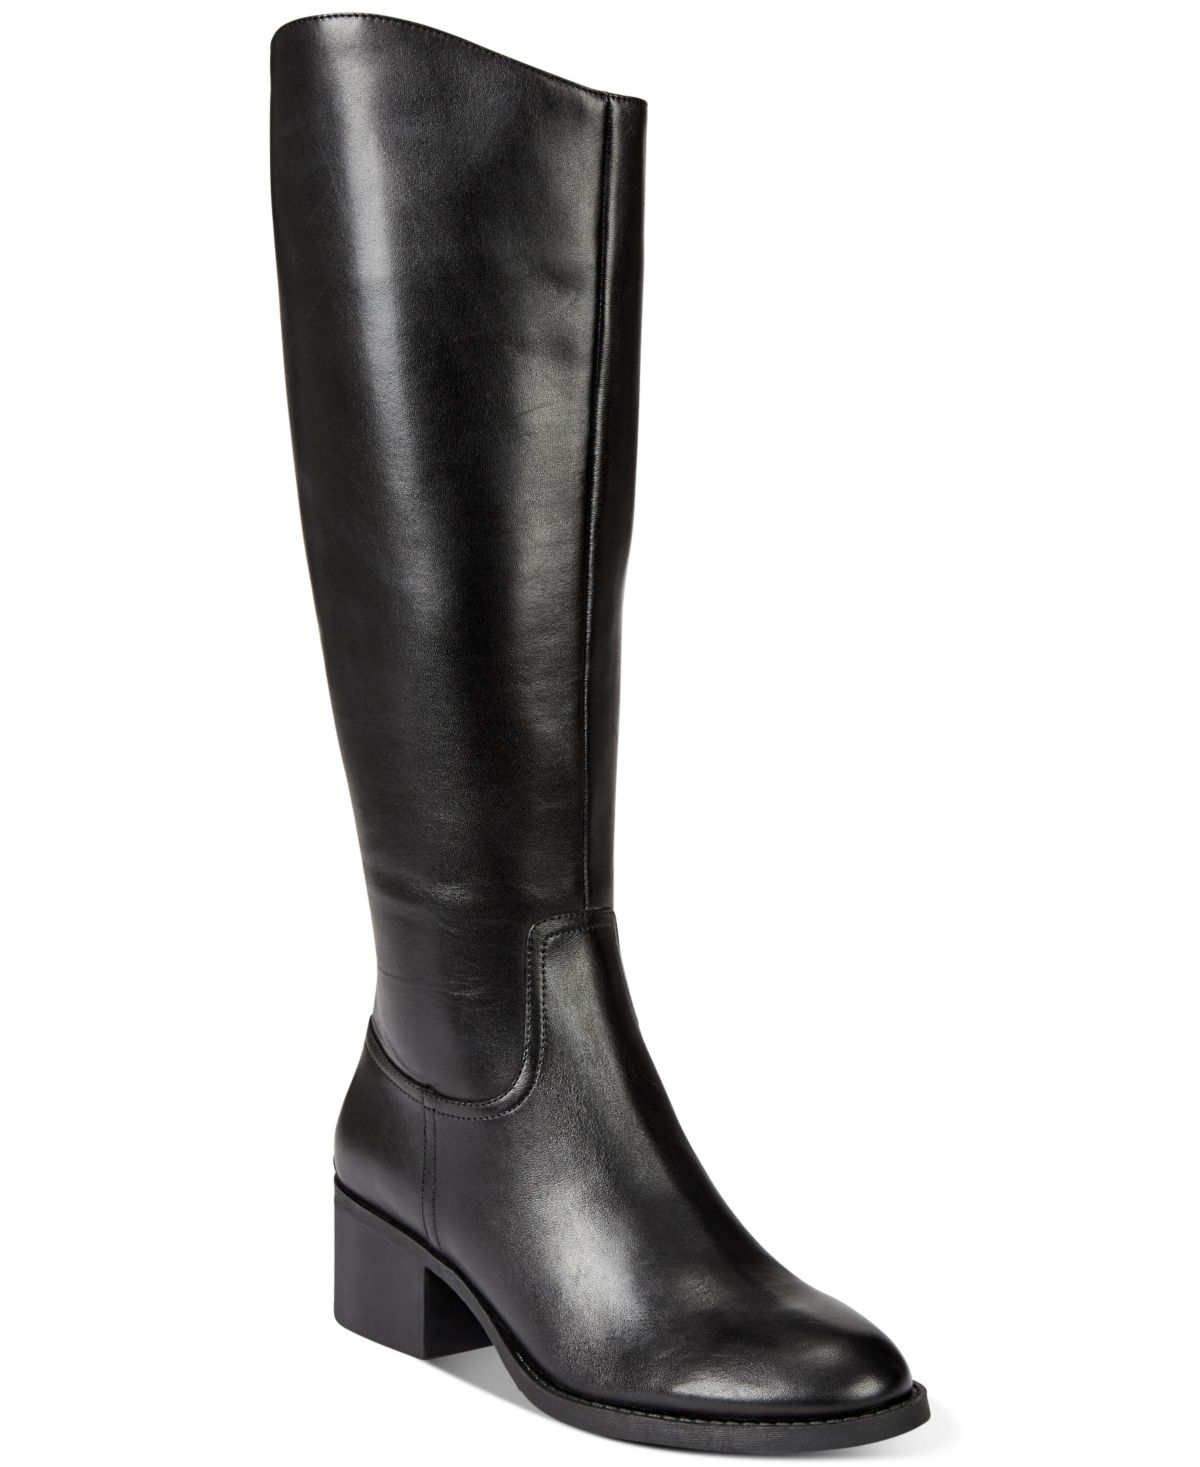 Cerie Wide-Calf Riding Boots